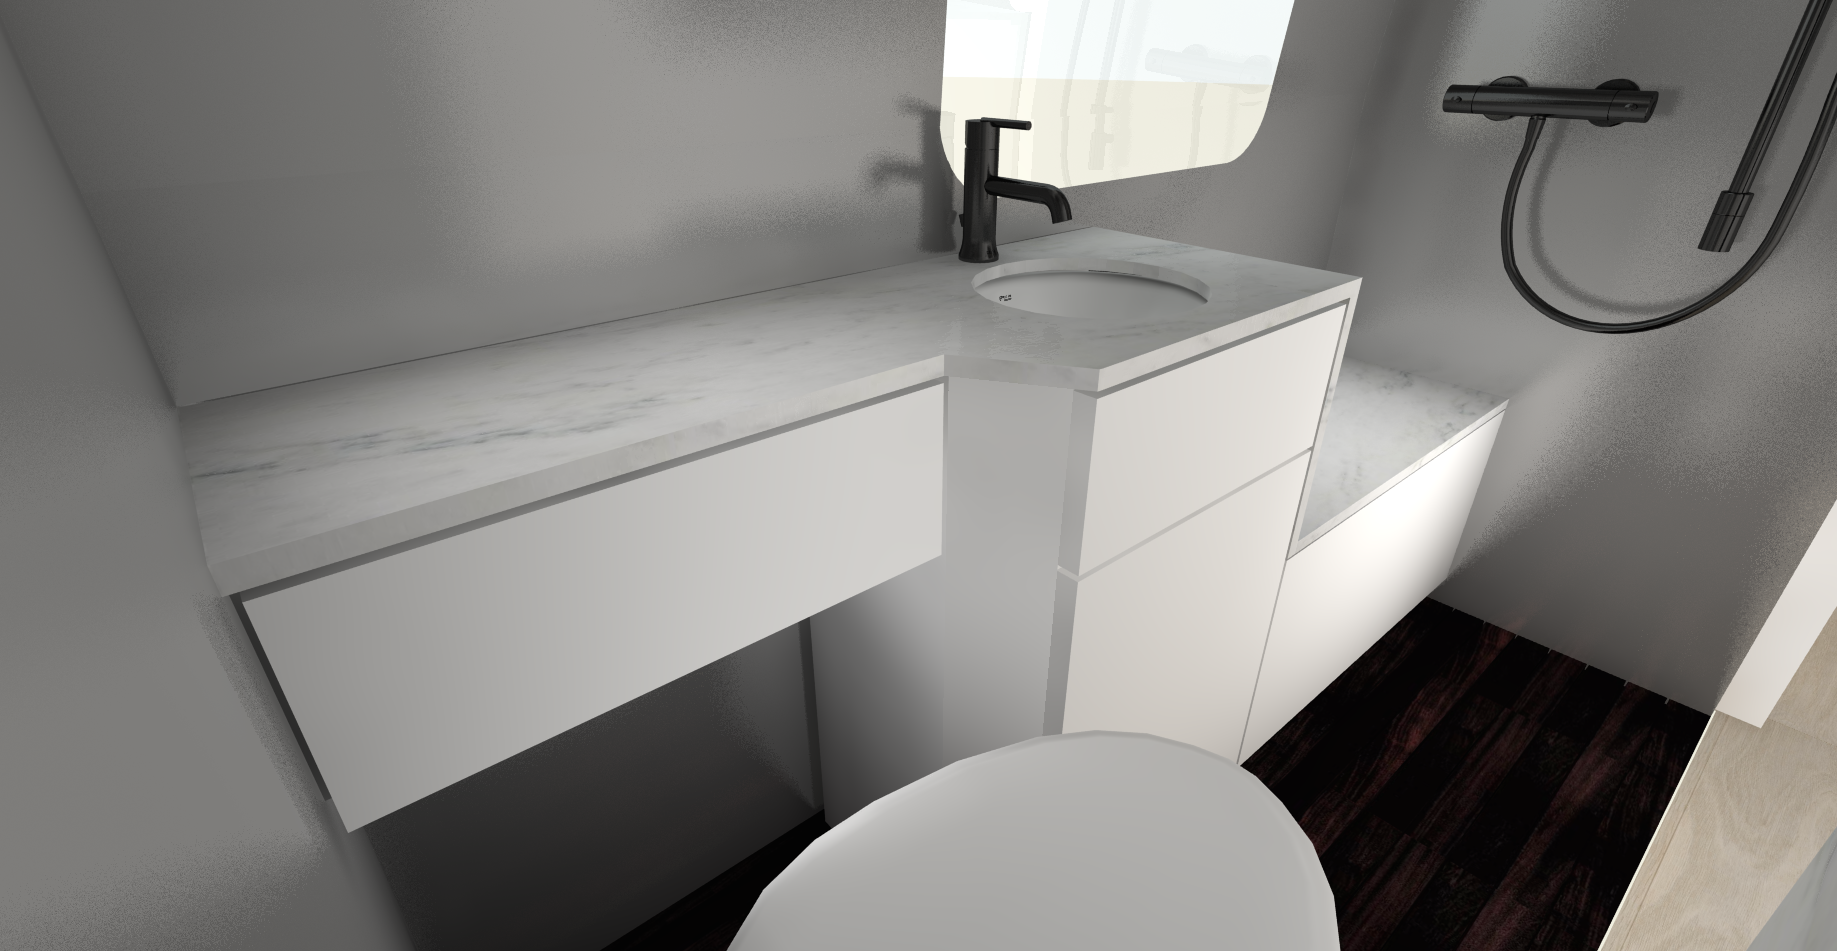 METAL WALLS, STONE CONTINUOUS COUNTER/BENCH WITH FRONT IN WHITE  (TOILET VIEW)